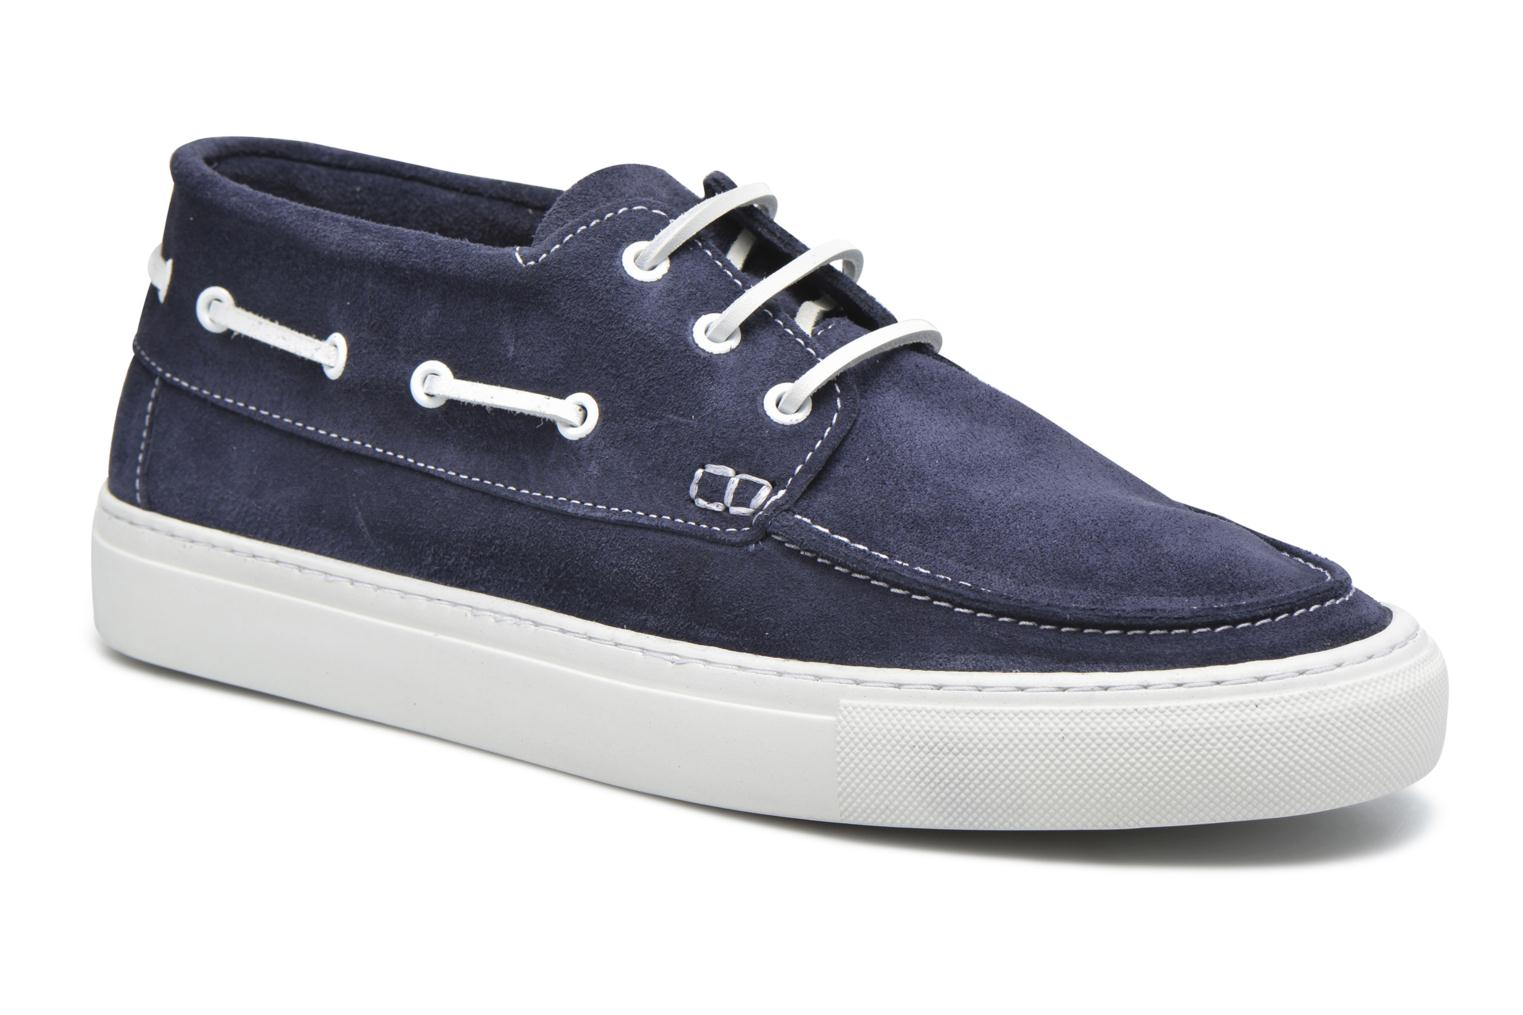 Sneakers Selected Homme Blauw